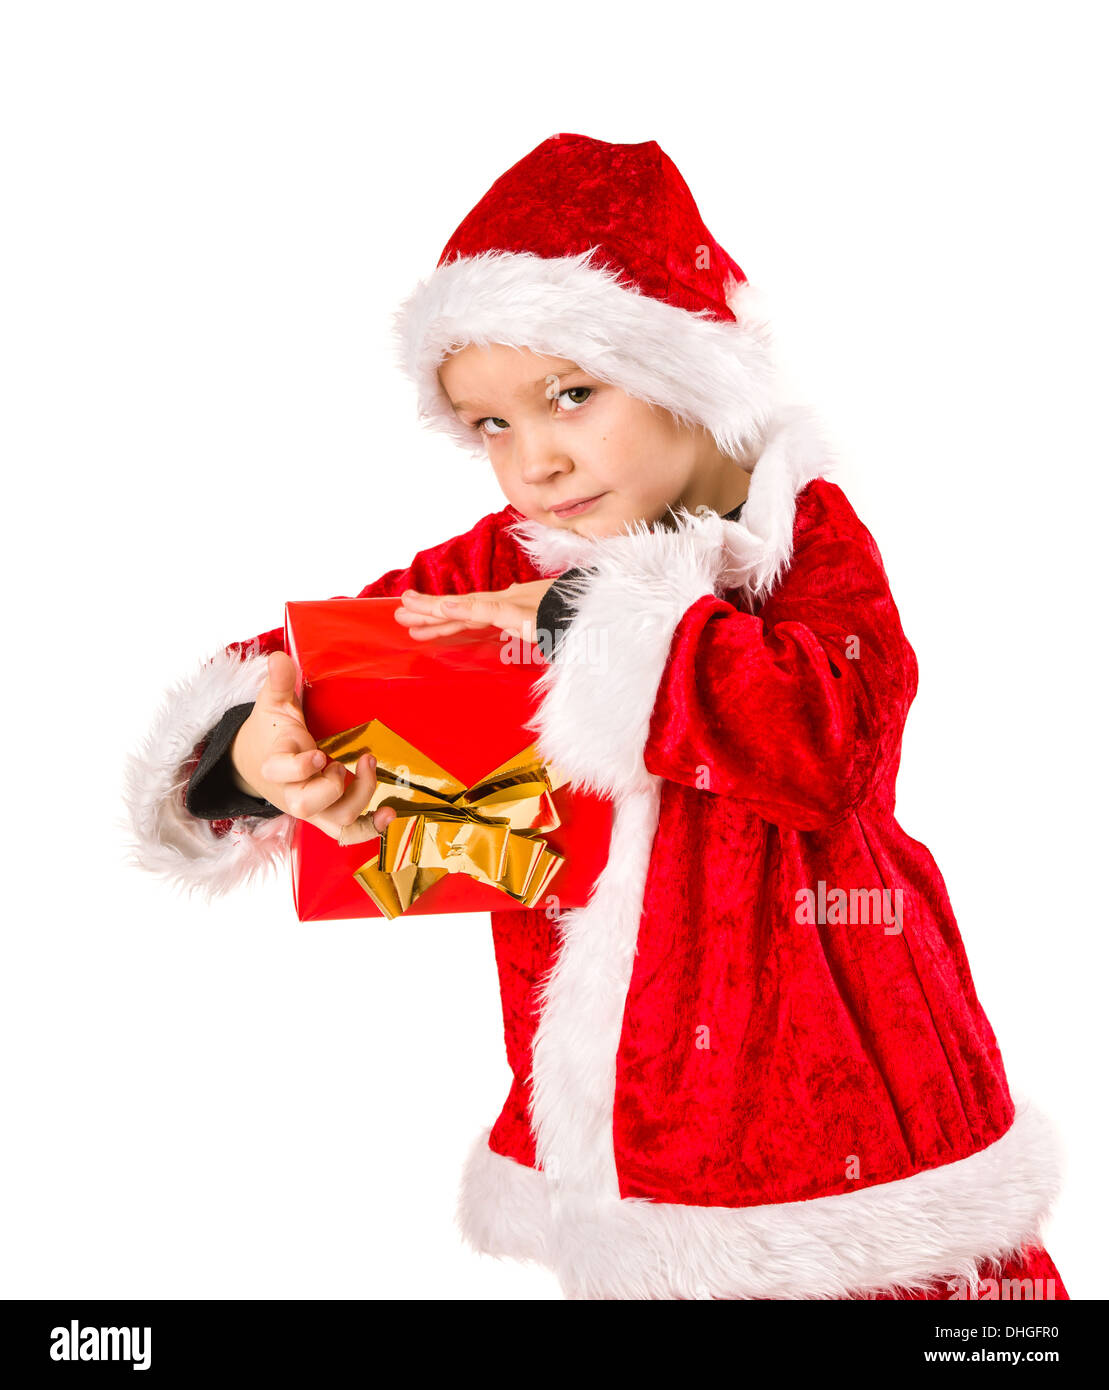 Adorable 5 year old boy wearing Santa Claus costume, Christmas gift ...